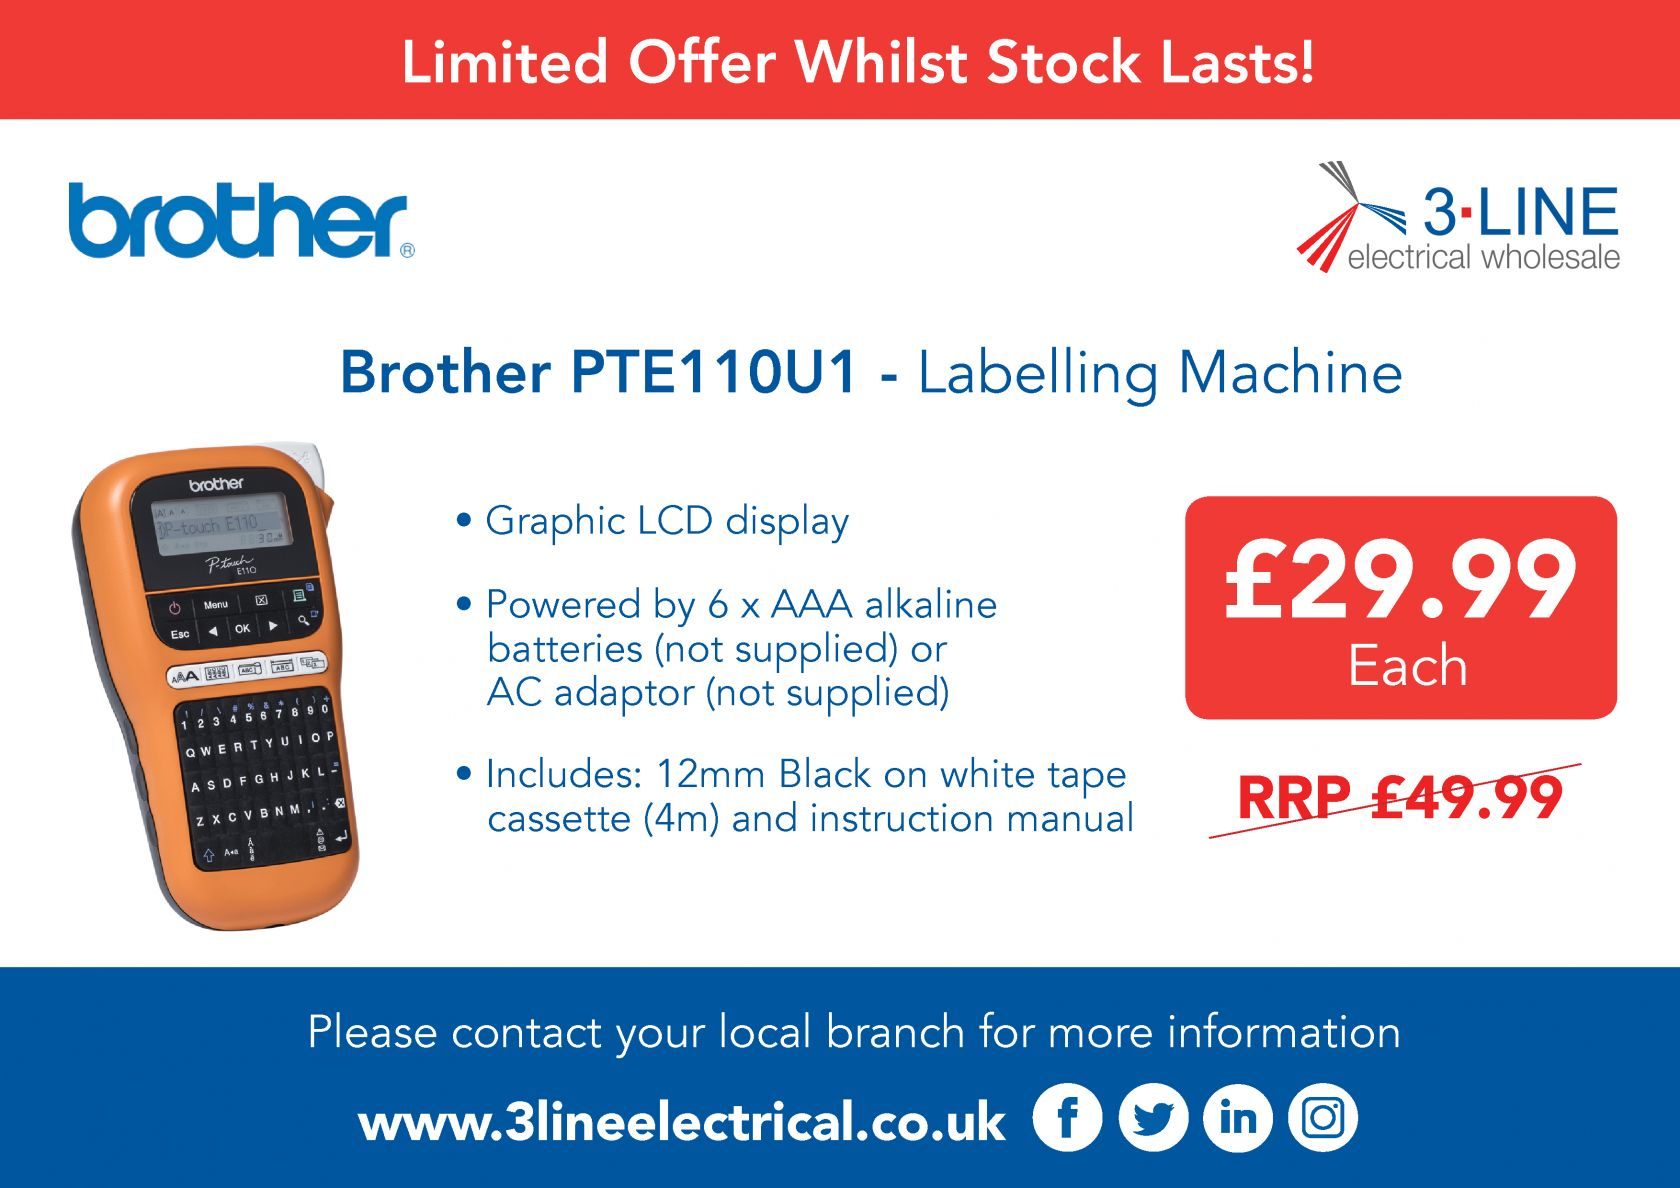 Brother PTE110U1 - Labelling Machine